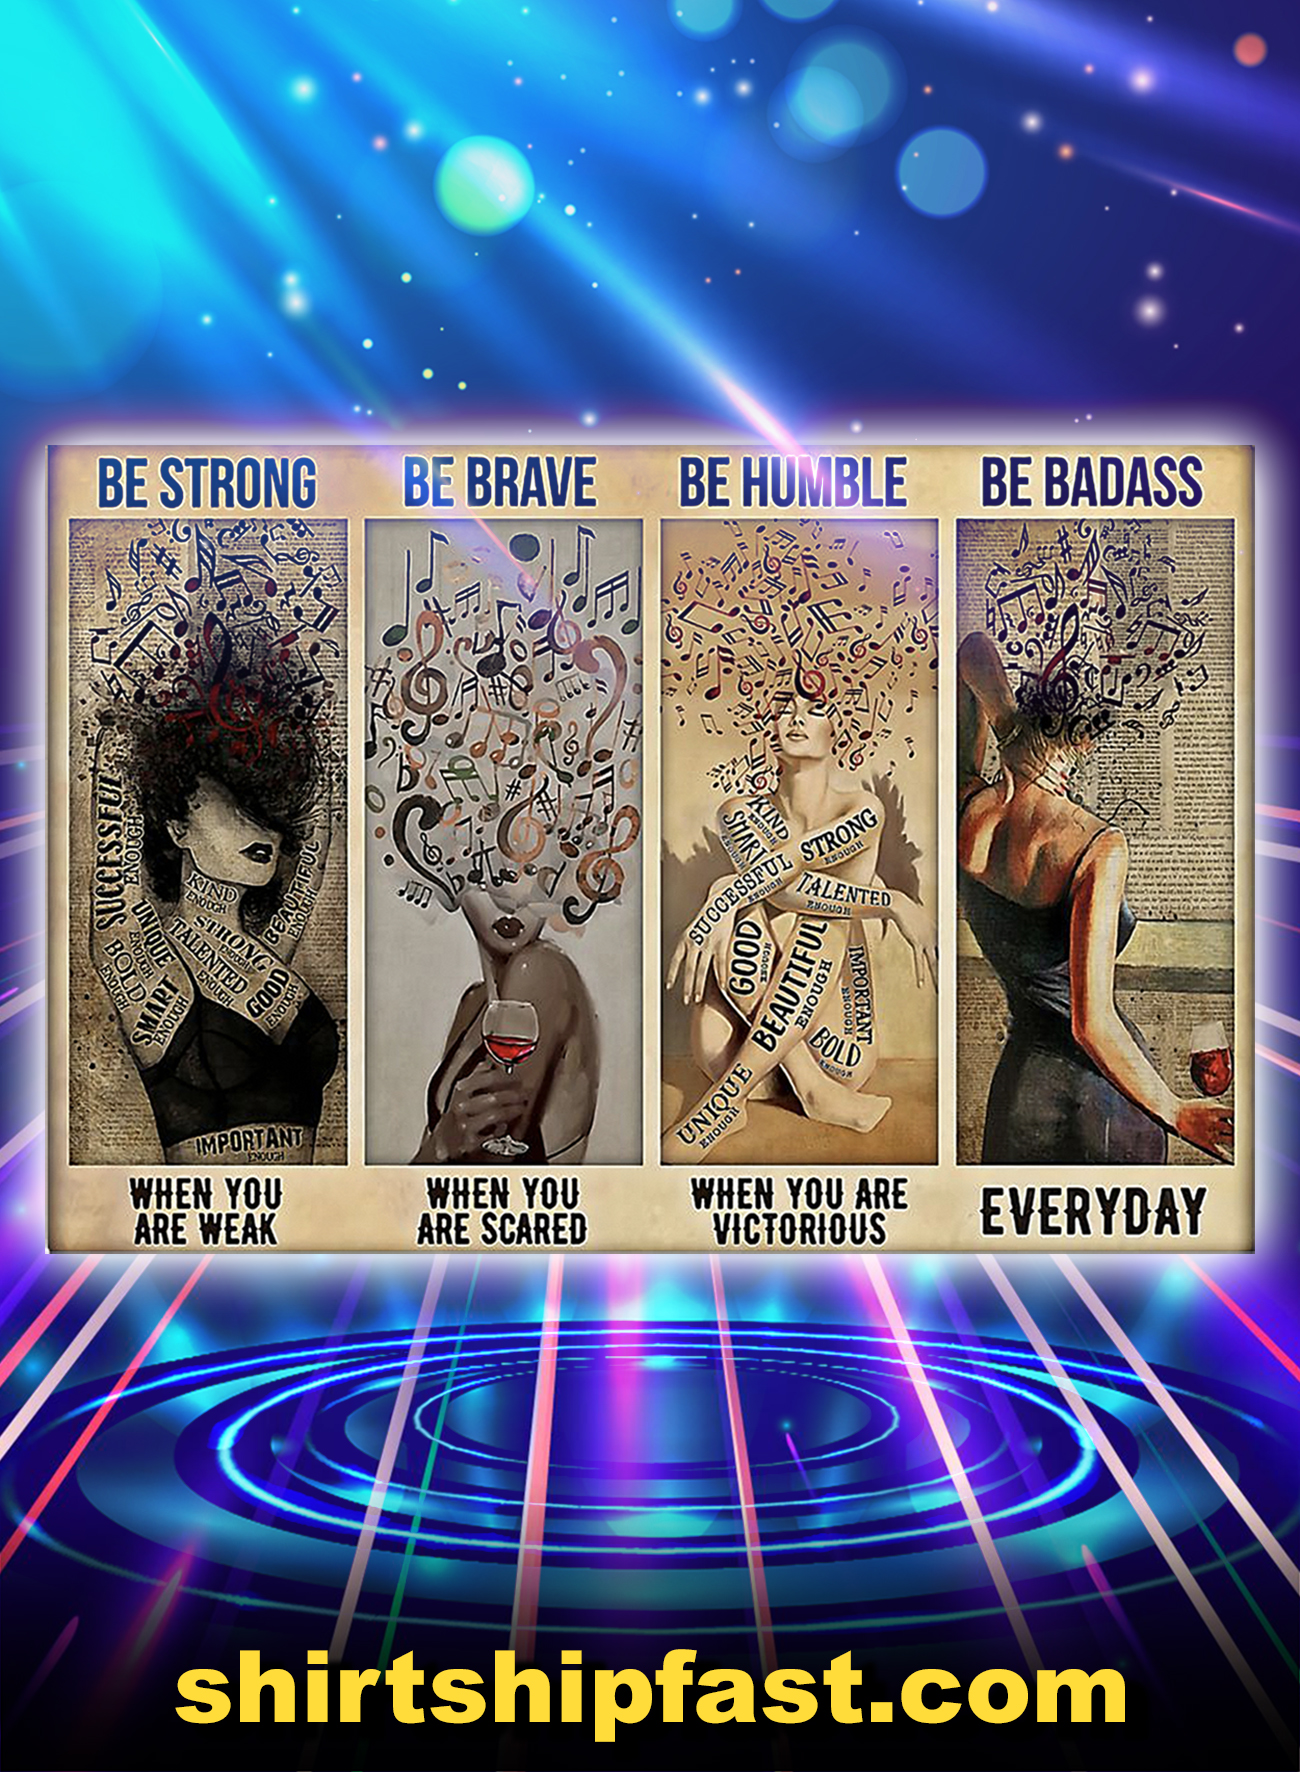 Music Woman be strong be brave be humble be badass poster - A1